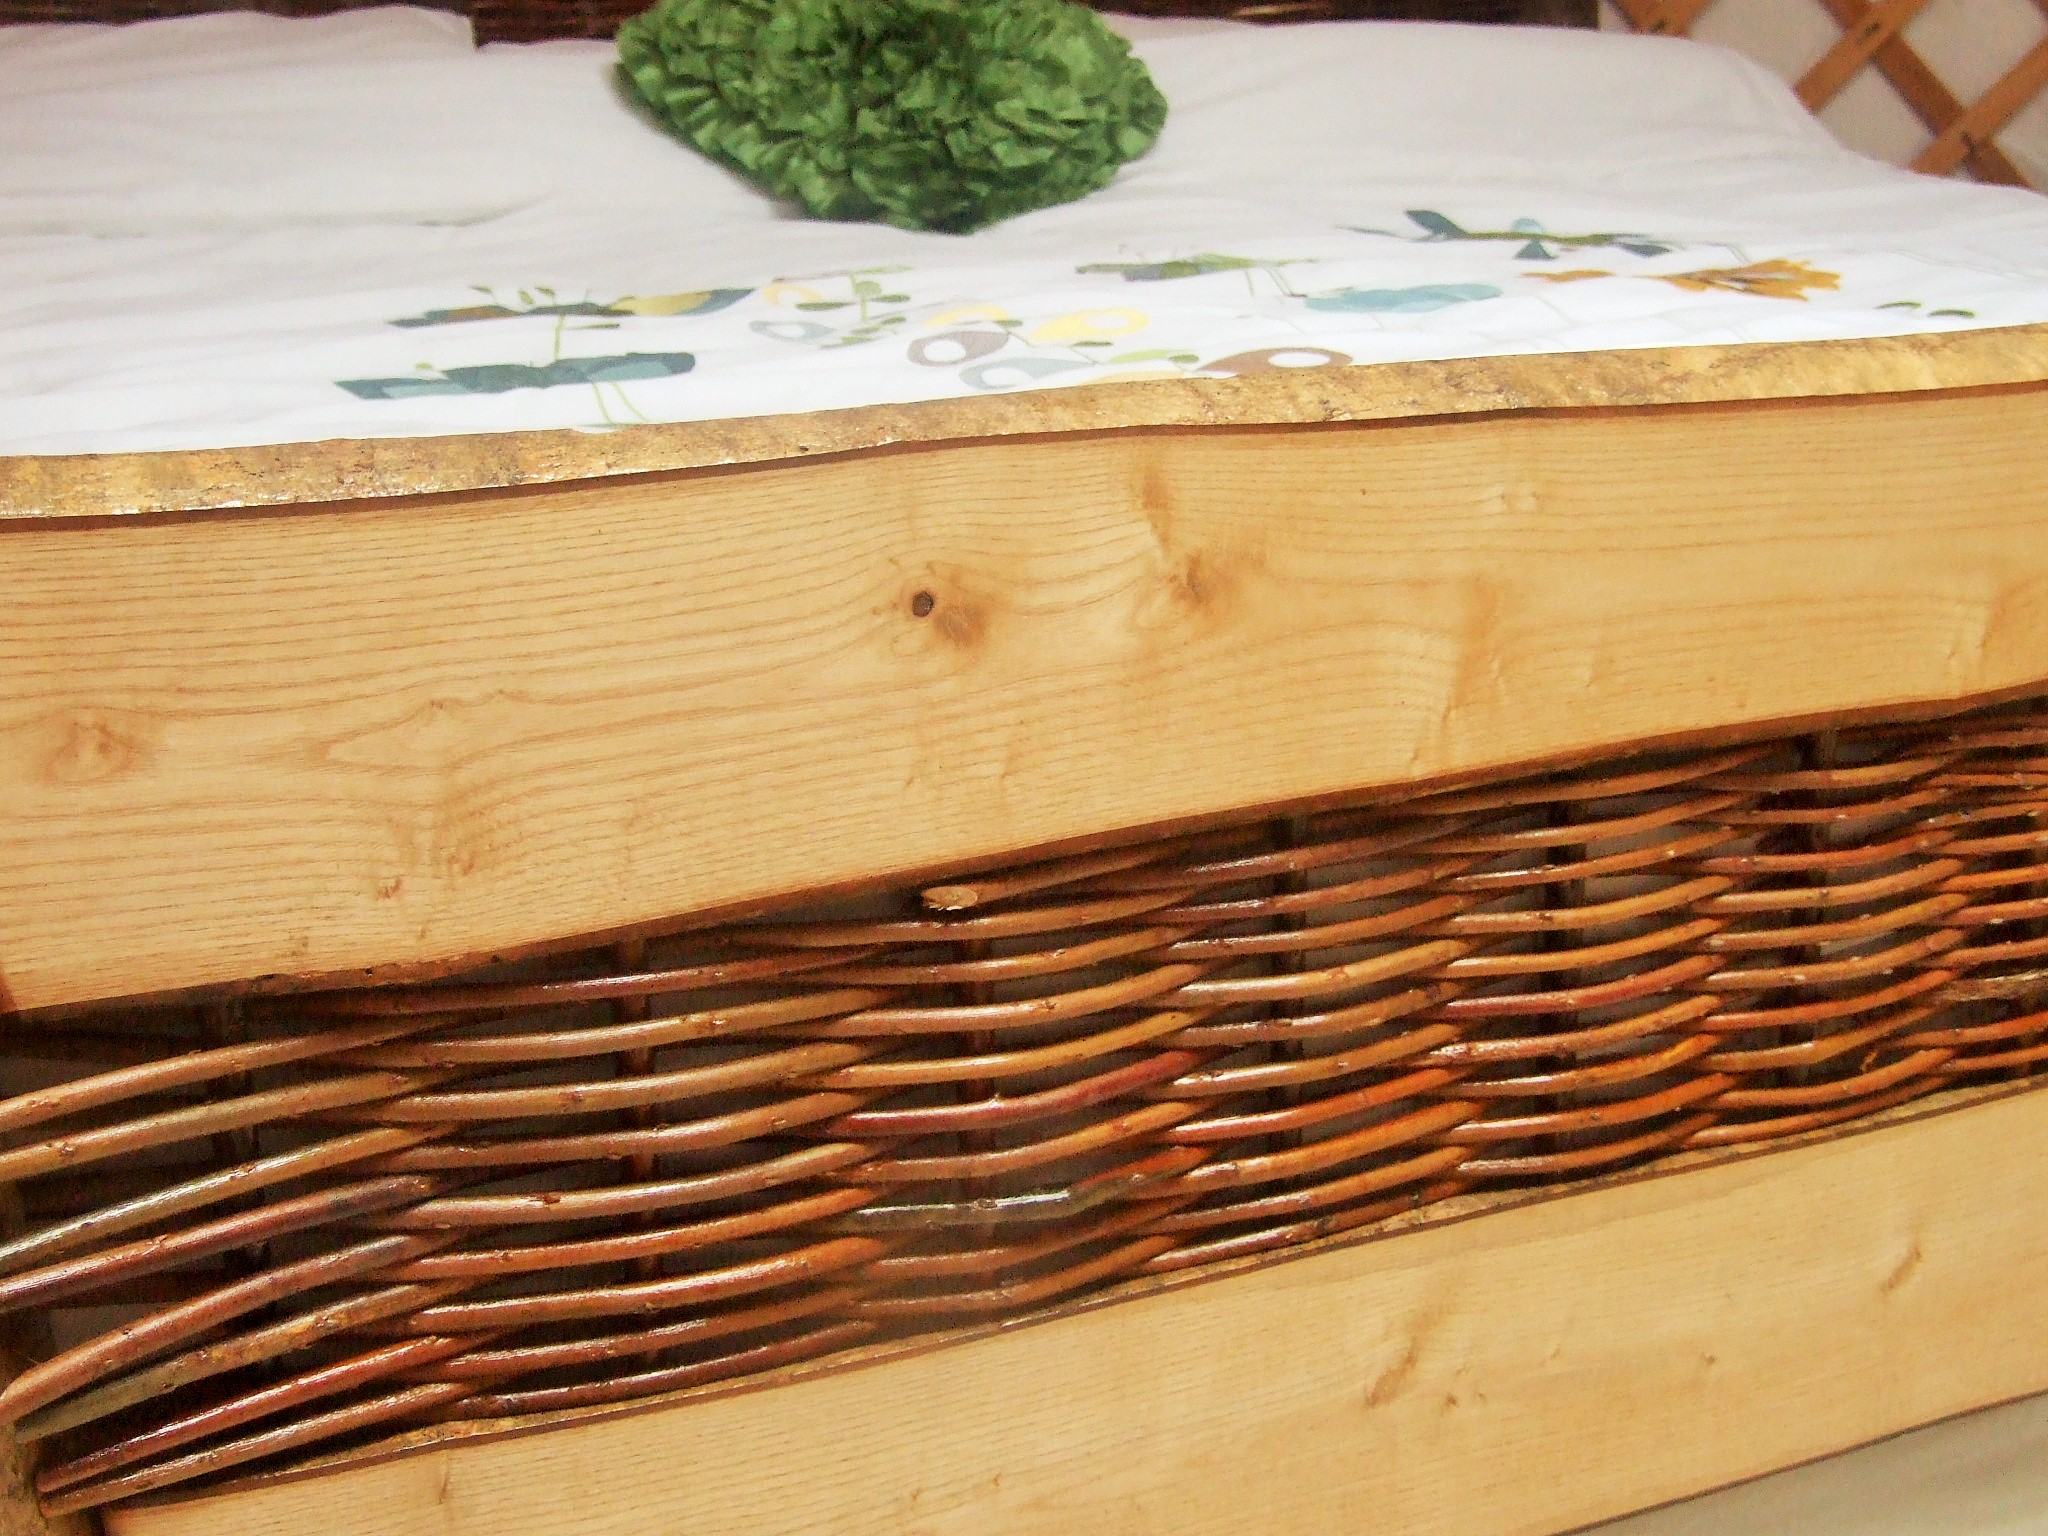 2015-05-19 Weaving Willow handcrafted bed (16)